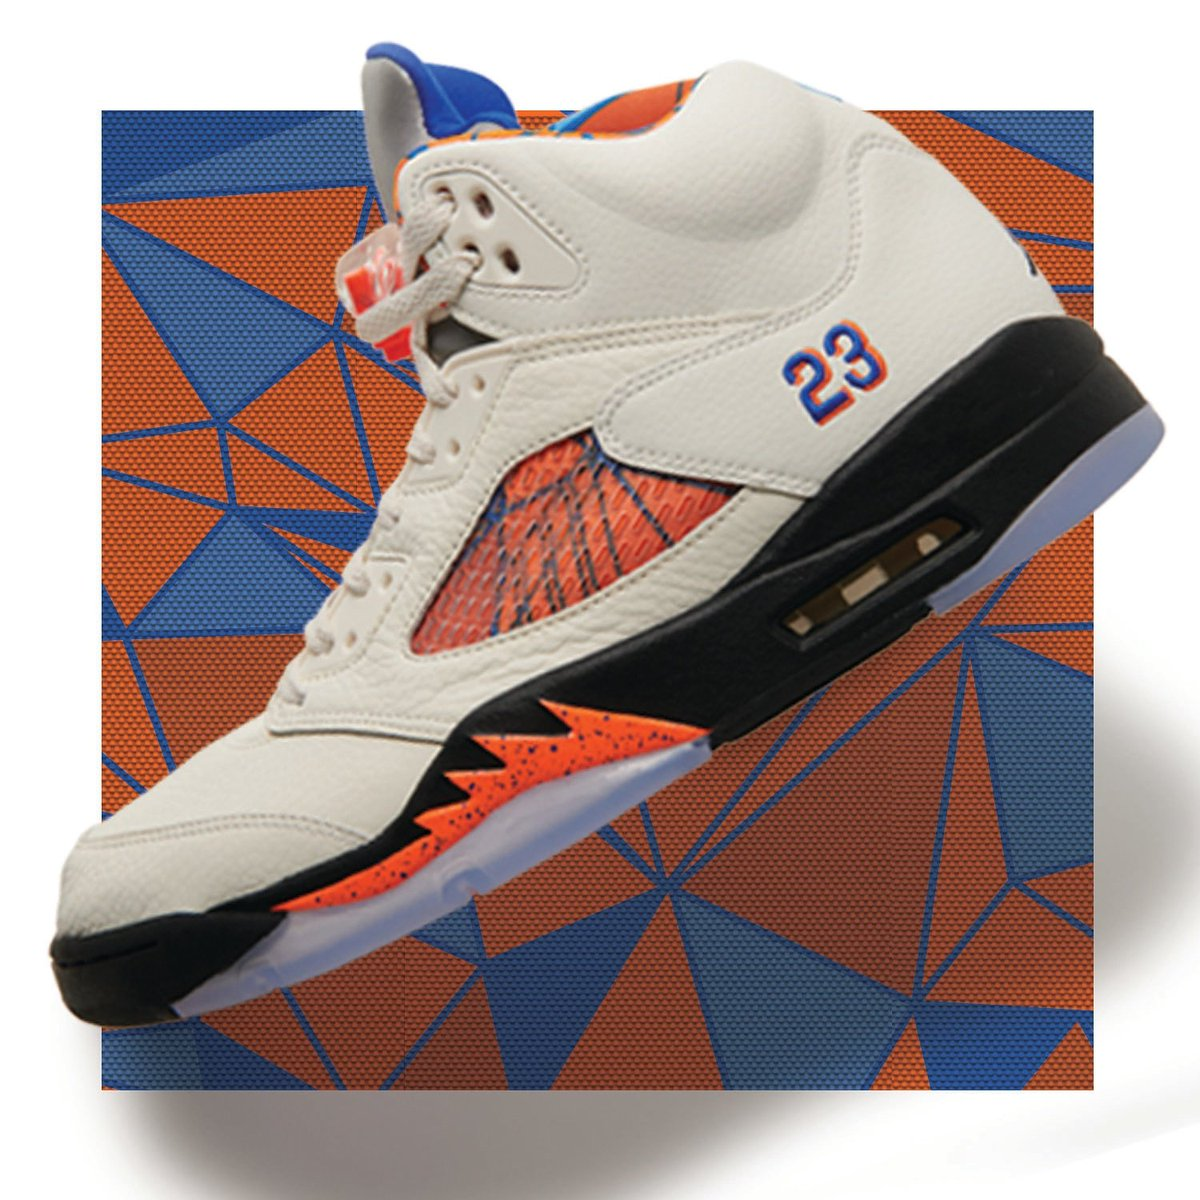 Cop Your Pair Of The Air Jordan 5 International Flight At Jimmy Jazz This Saturday August 25th 10ampic Twitter Com H4z7uzpm7a